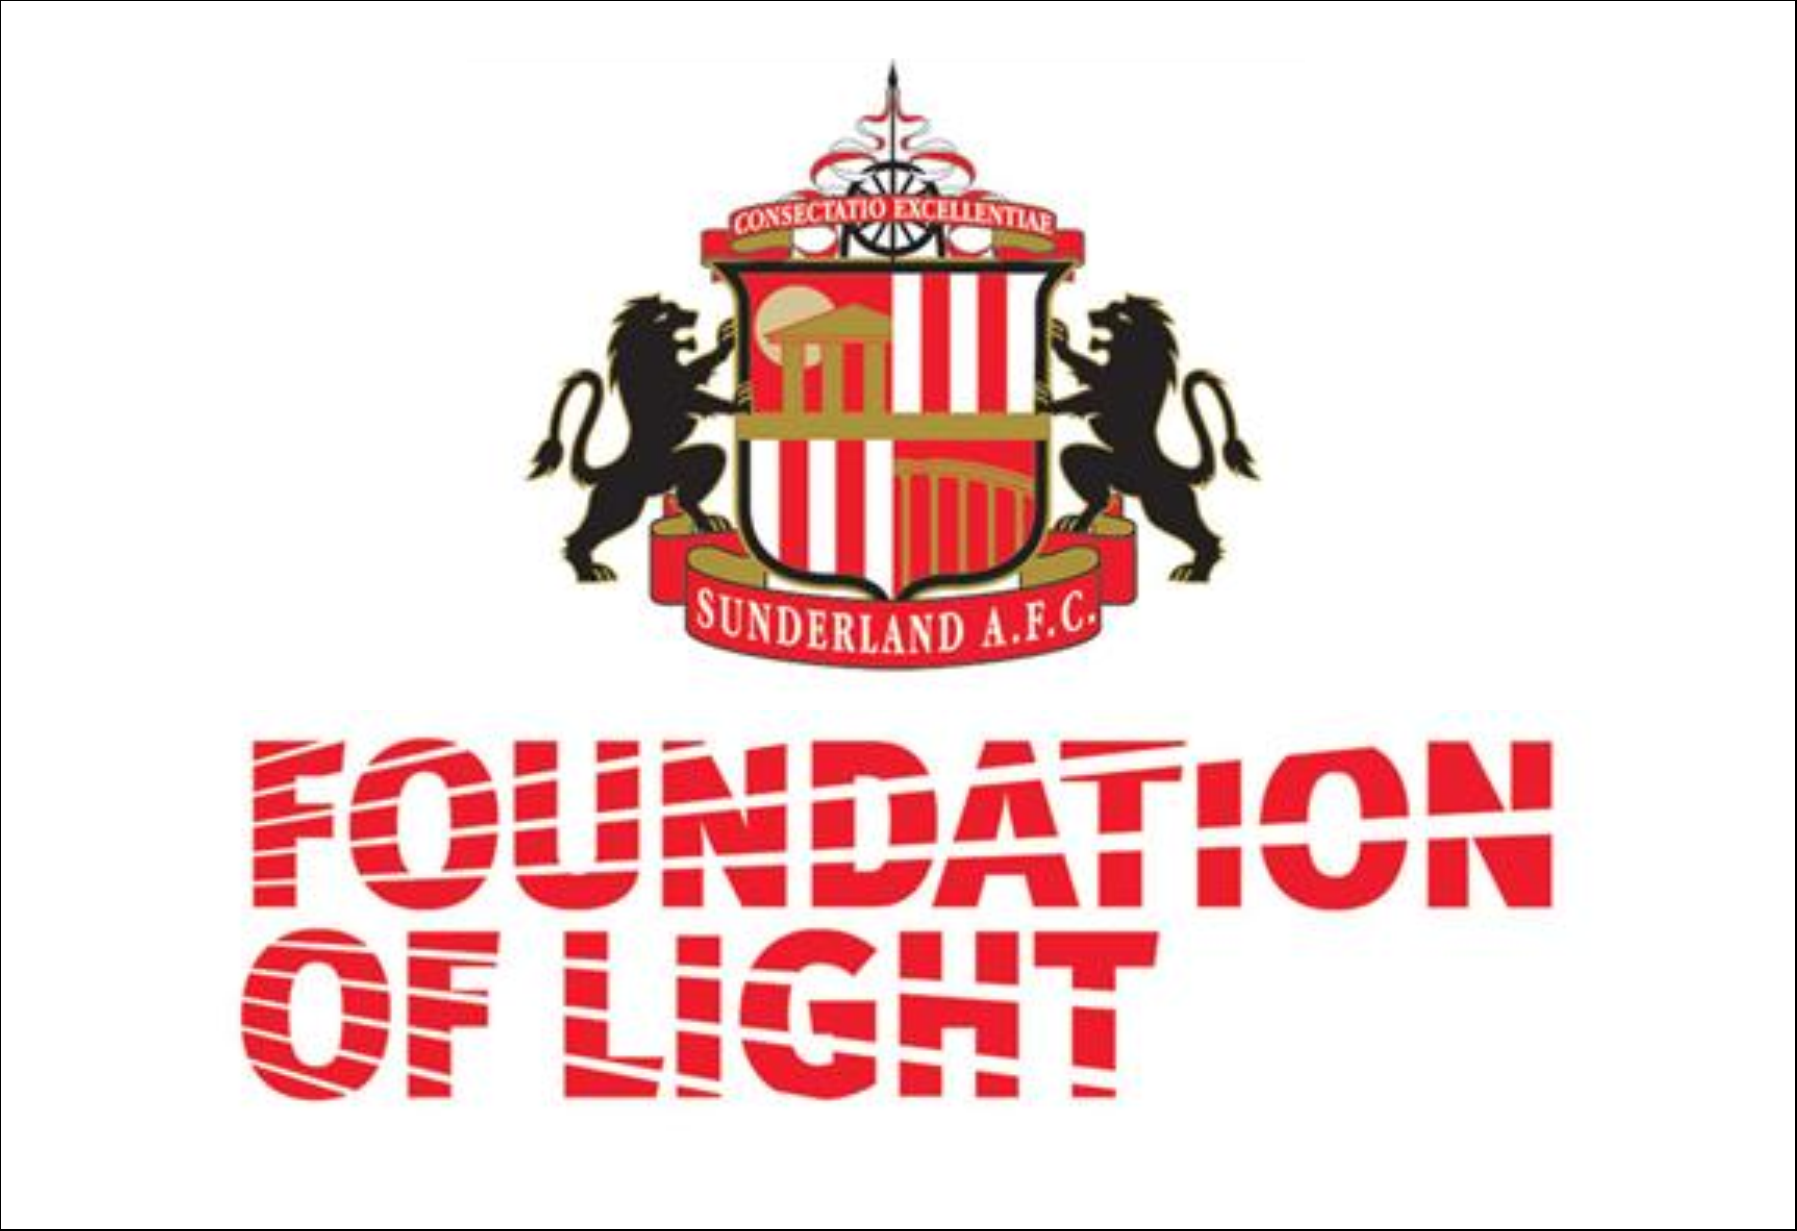 Foundation of Light crest